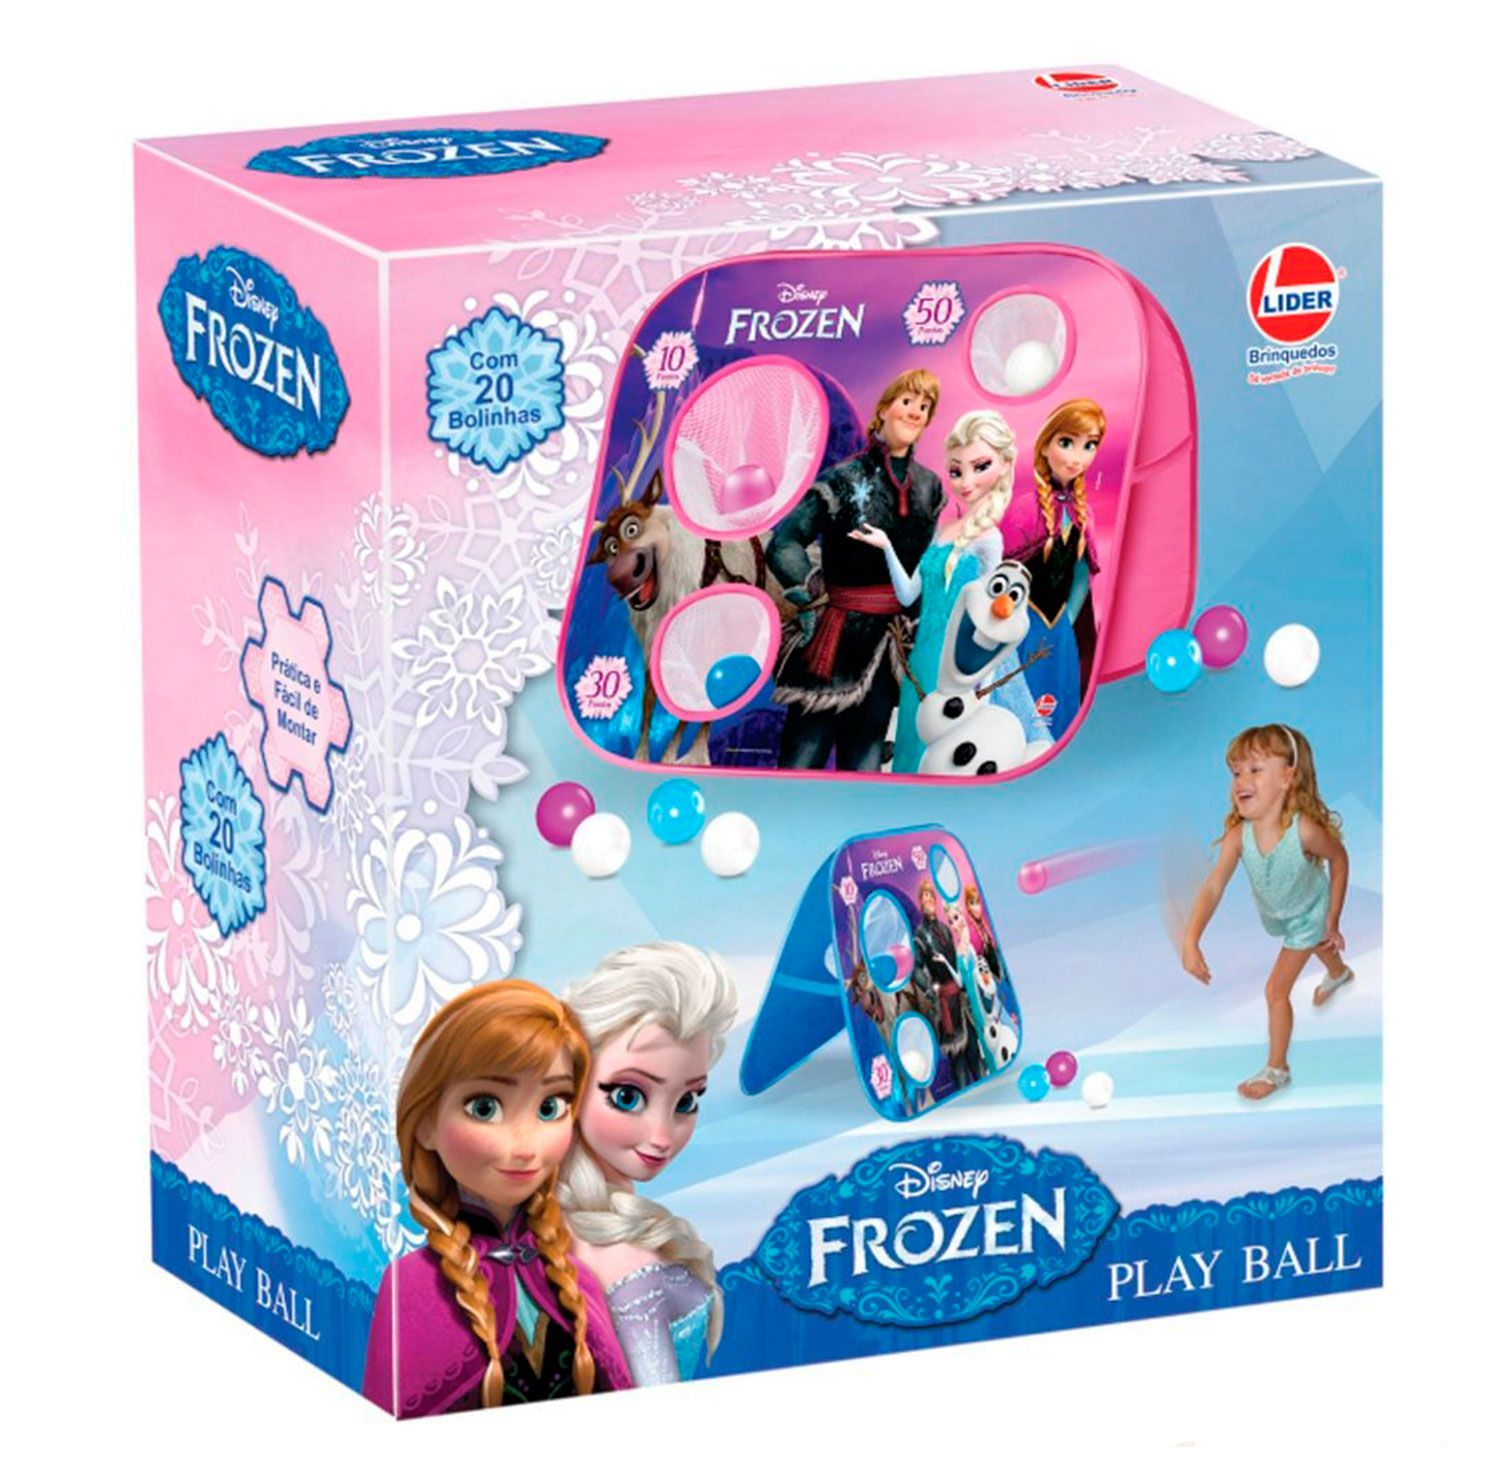 PLAY BALL DA FROZEN LIDER REF:2282